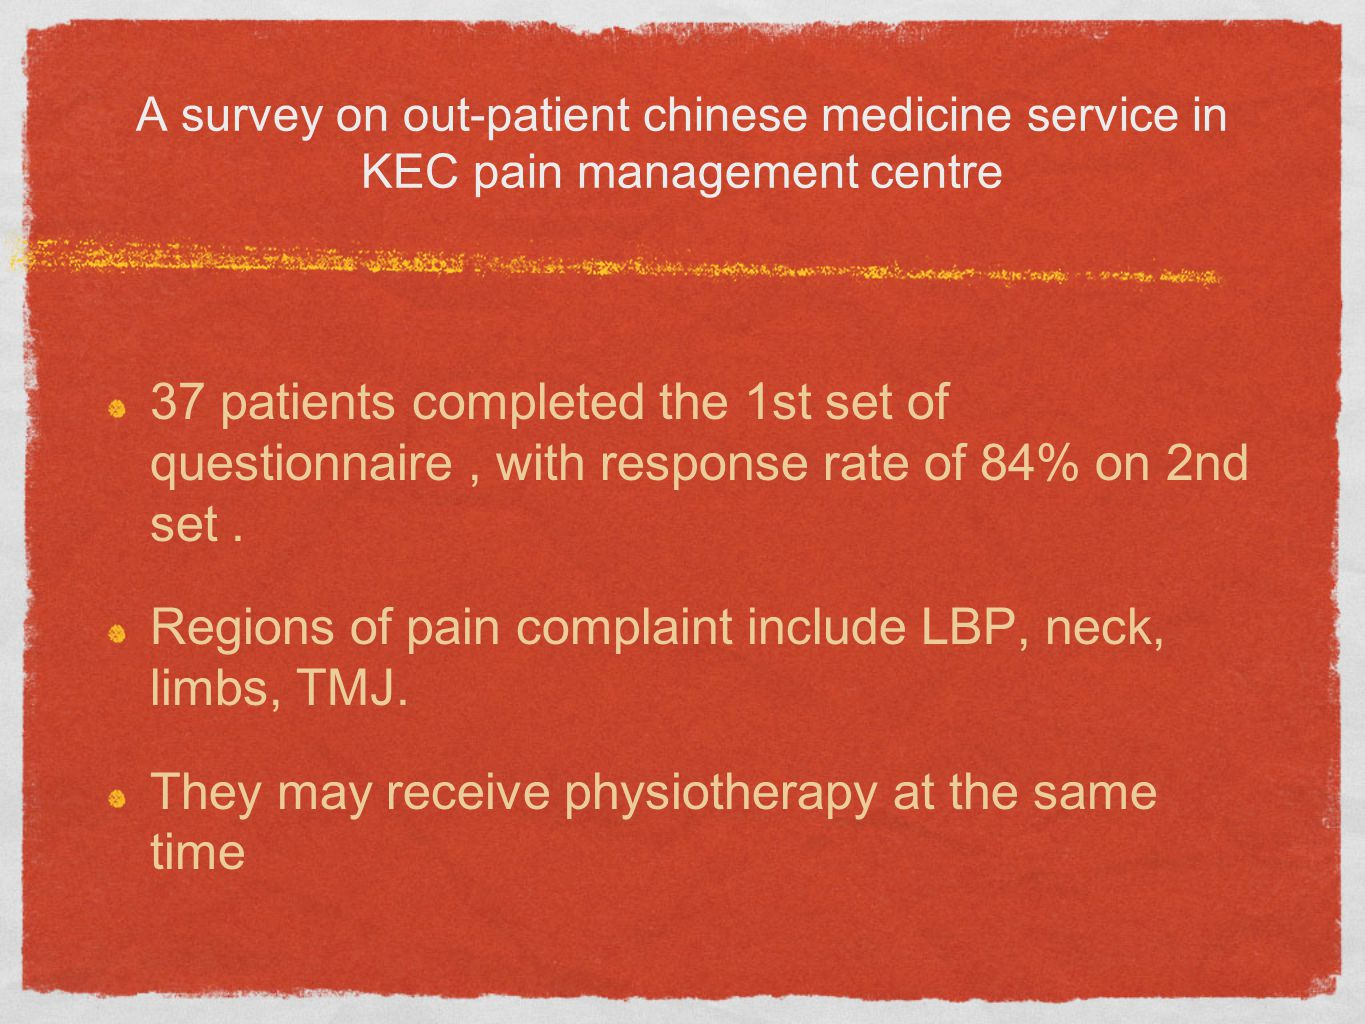 37 patients completed the 1st set of questionnaire, with response rate of 84% on 2nd set.